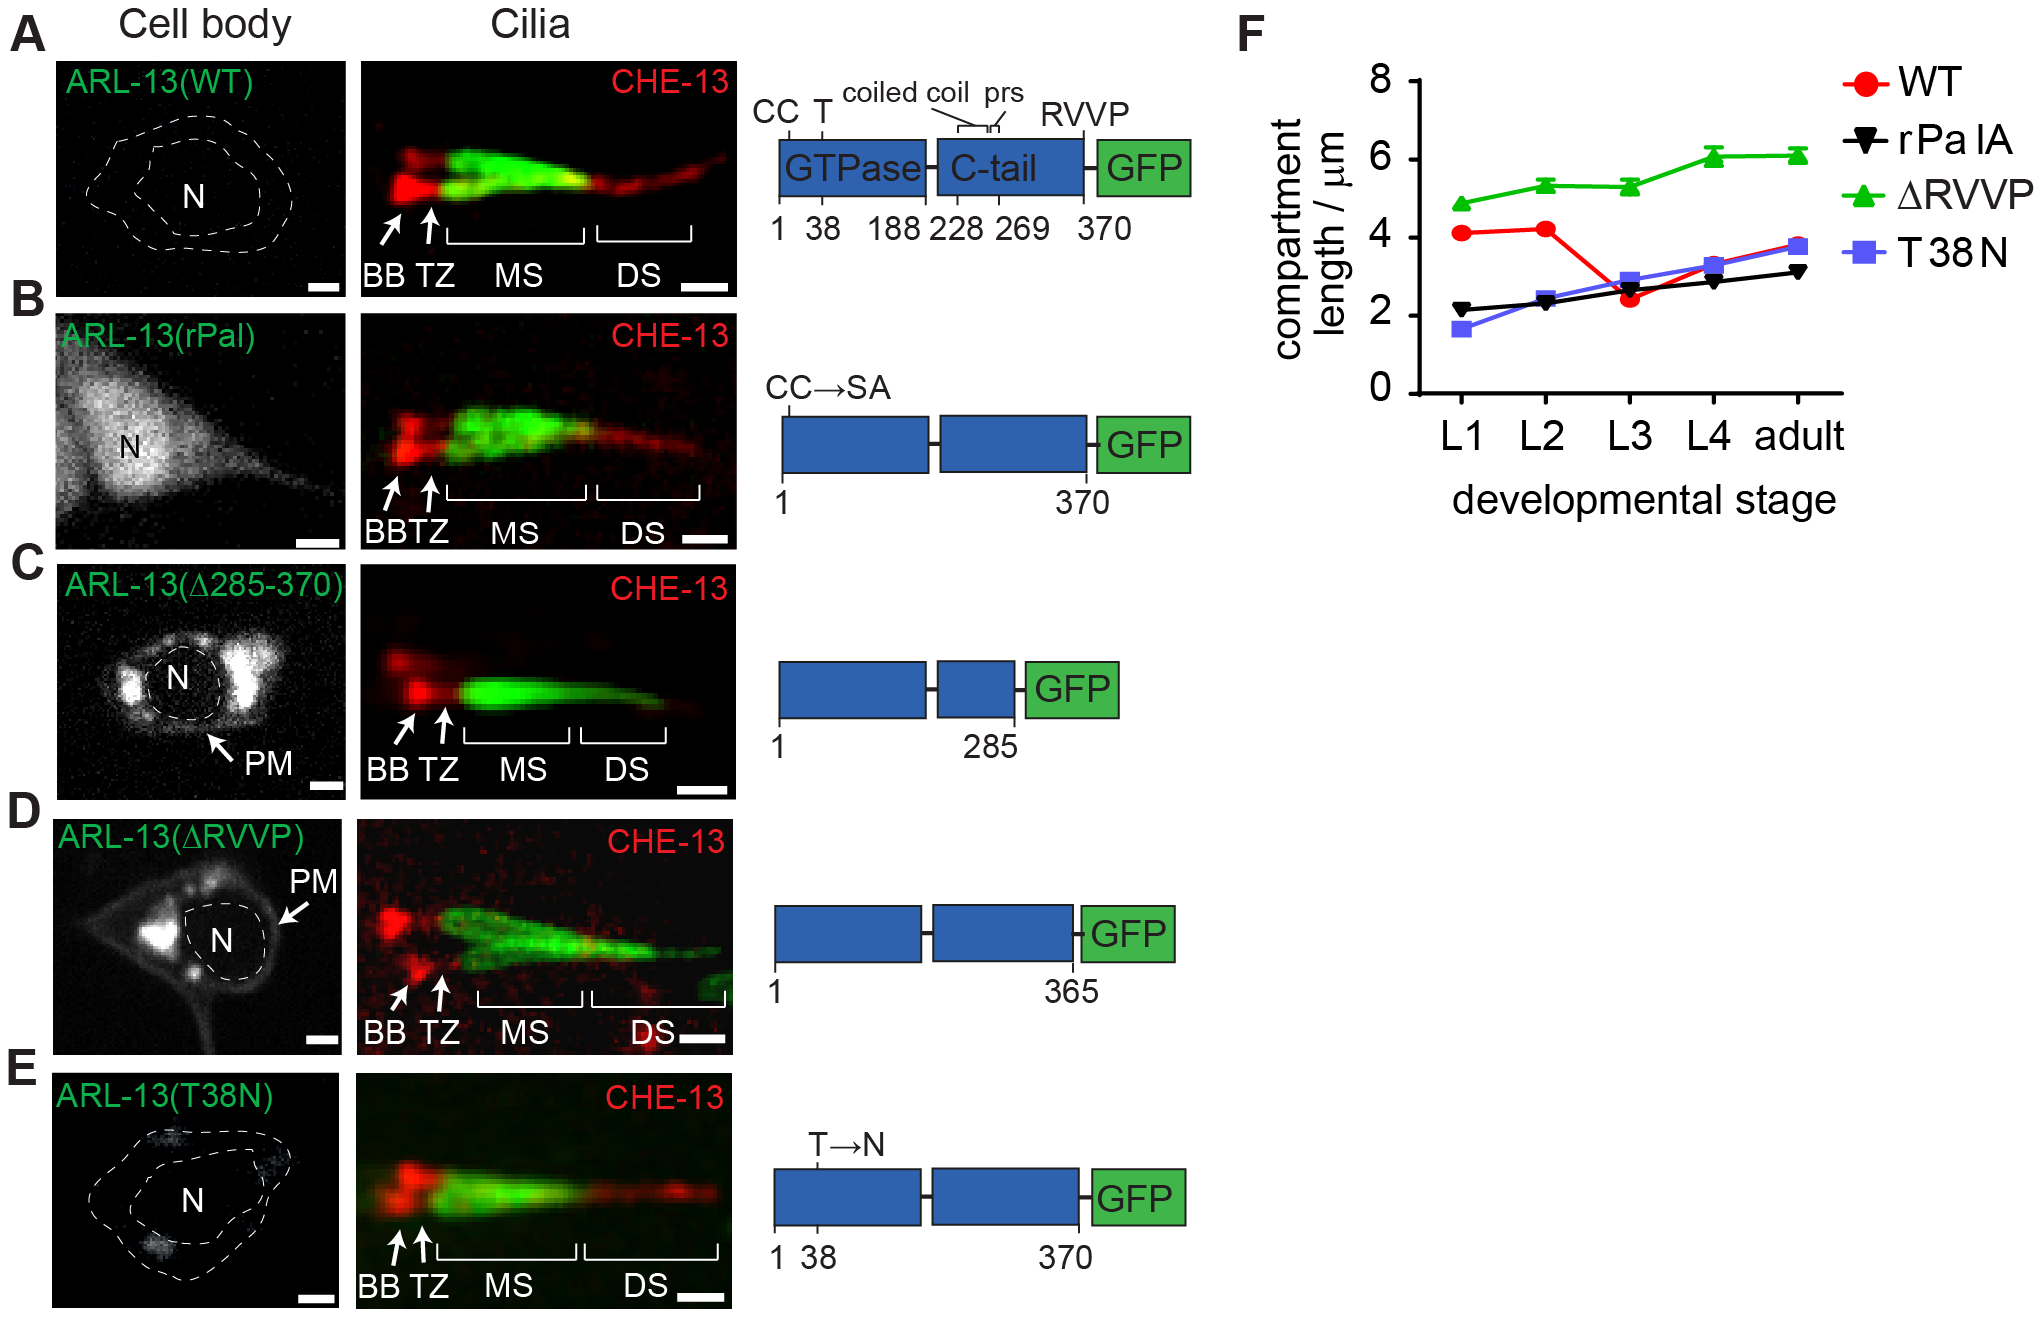 RVVP and palmitoylation modification motifs prevent targeting of ARL-13 to ciliary distal segments and the nucleus.